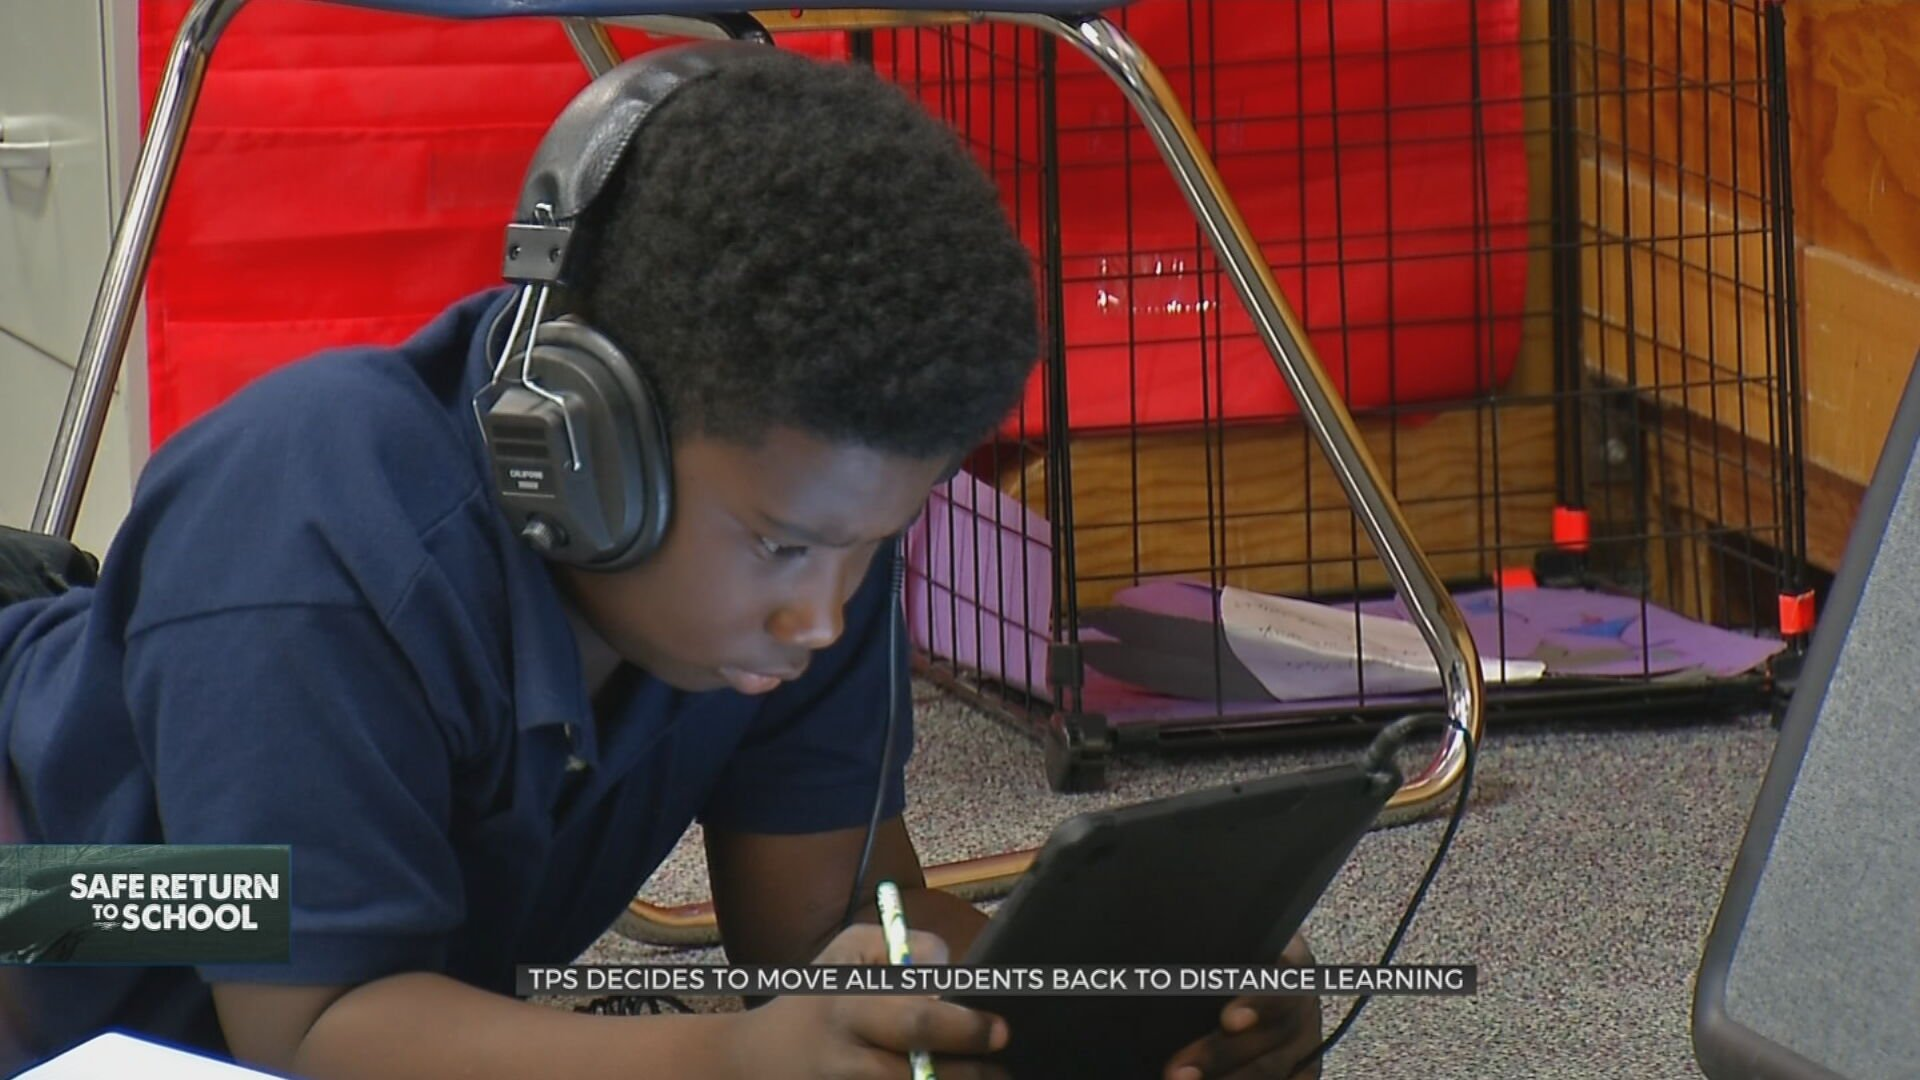 TPS Decides To Move All Students Back To Distance Learning